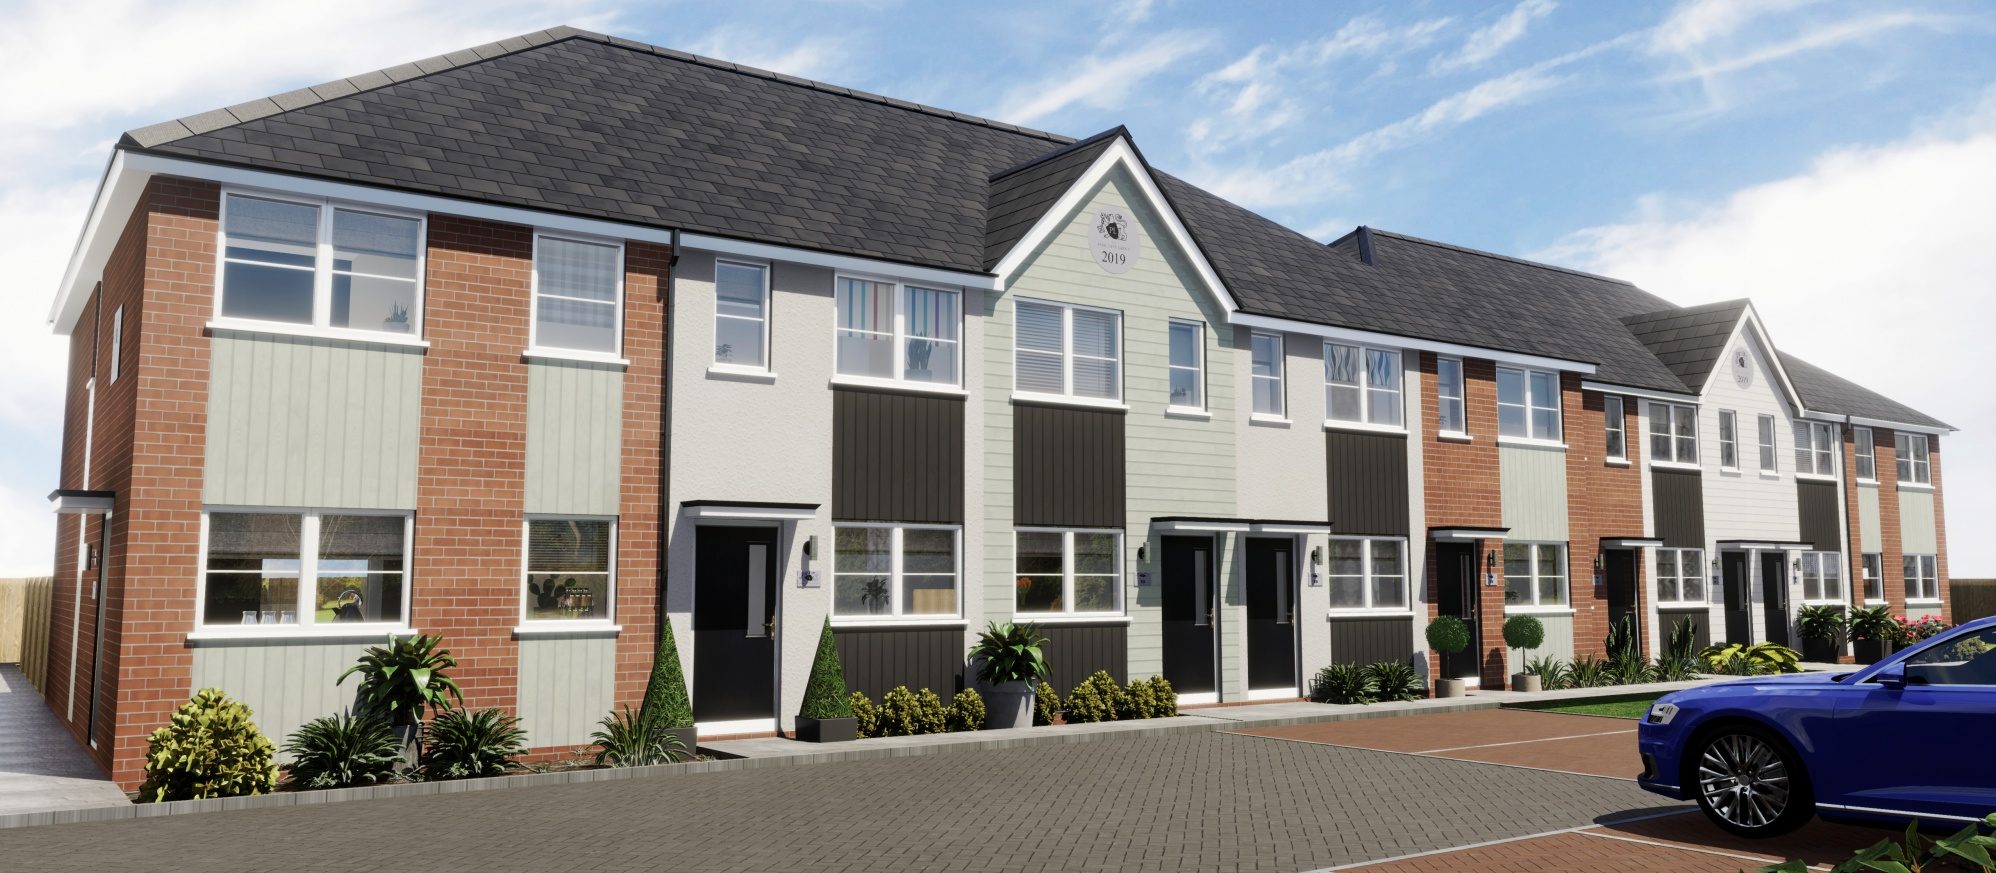 New homes for sale in Hastings by The Park Lane Group